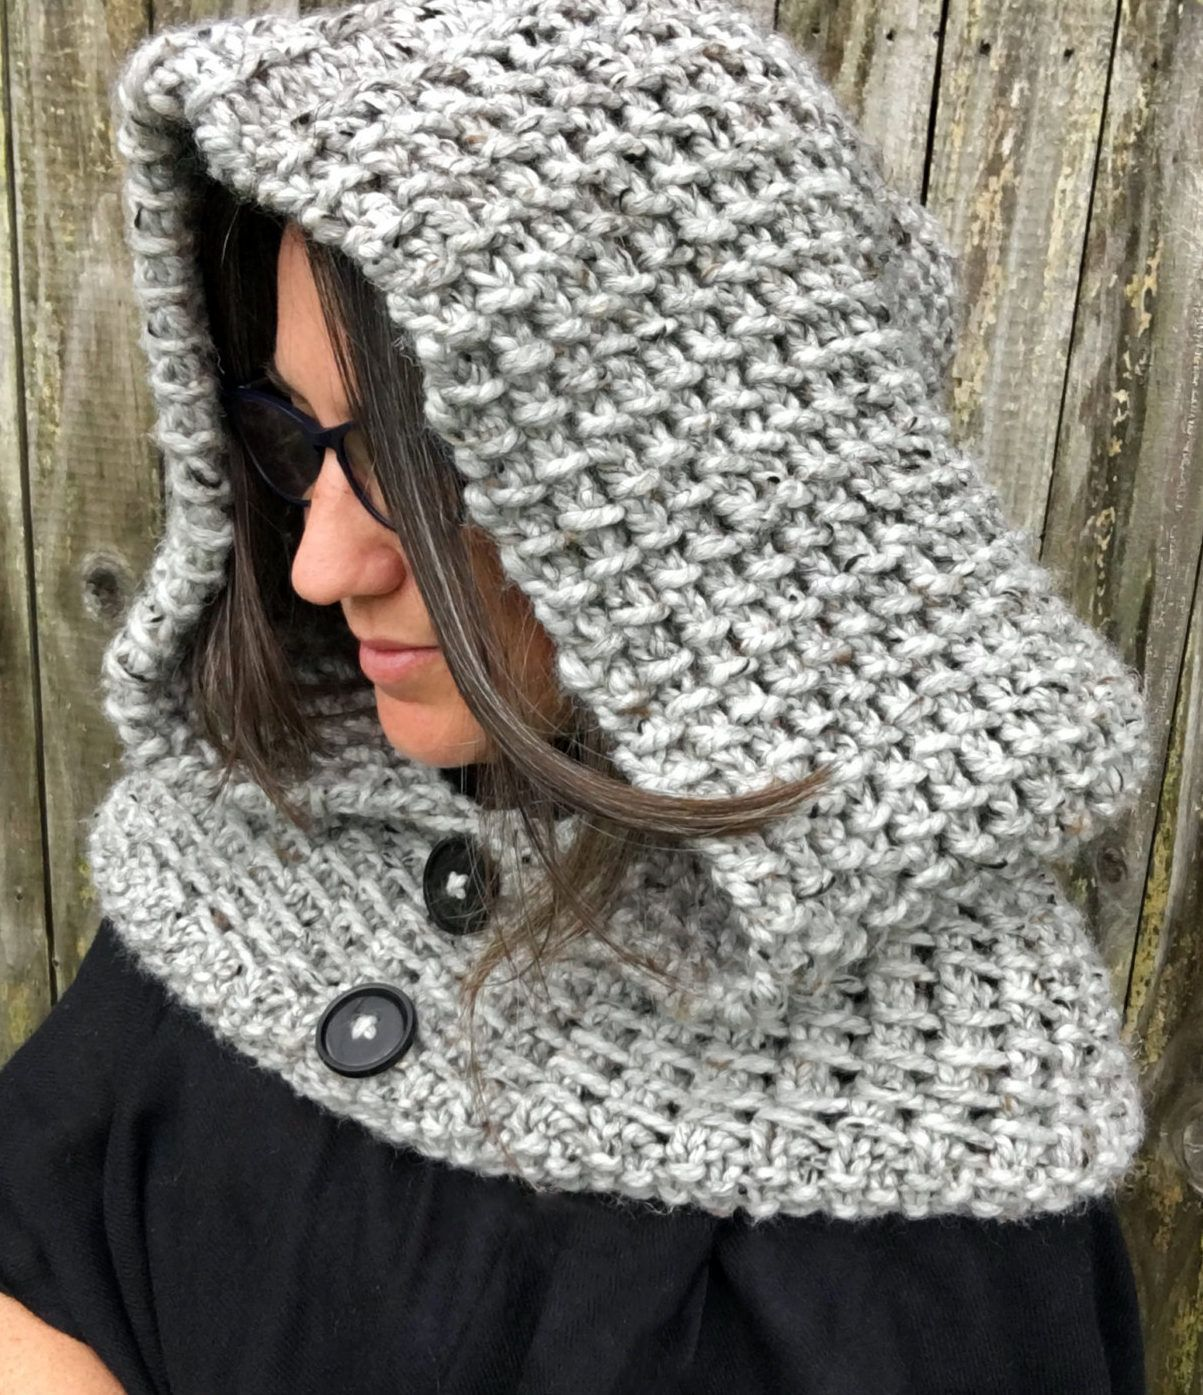 Knitting Pattern for 2 Row Repeat Dawn Hooded Cowl - A simple two ...